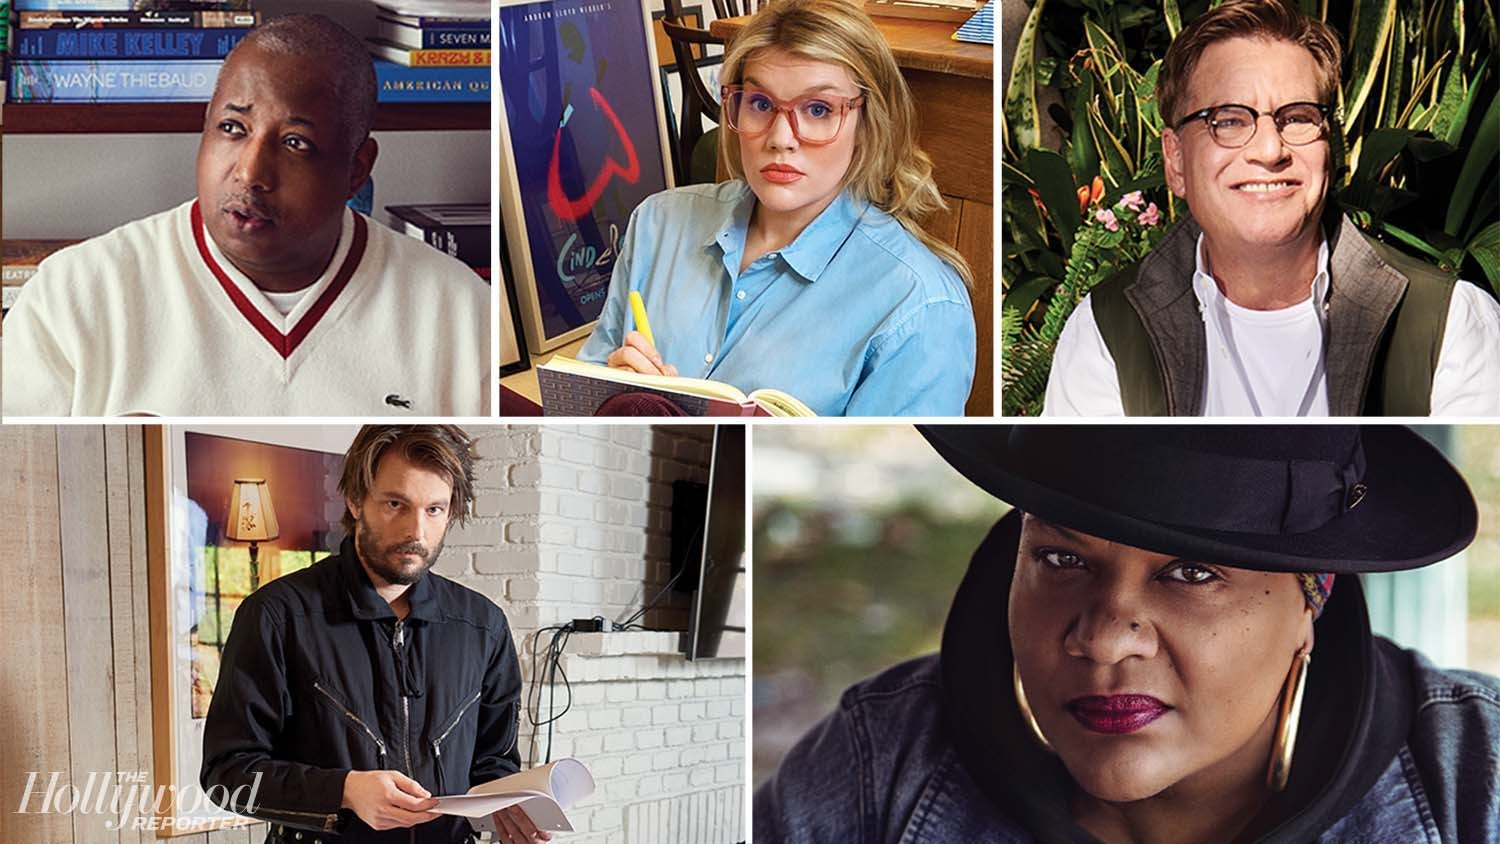 Writer Roundtable: Aaron Sorkin, Emerald Fennell, Kemp Powers, Radha Blank and Sam Levinson on the Journey to Get Their Stories to Screen